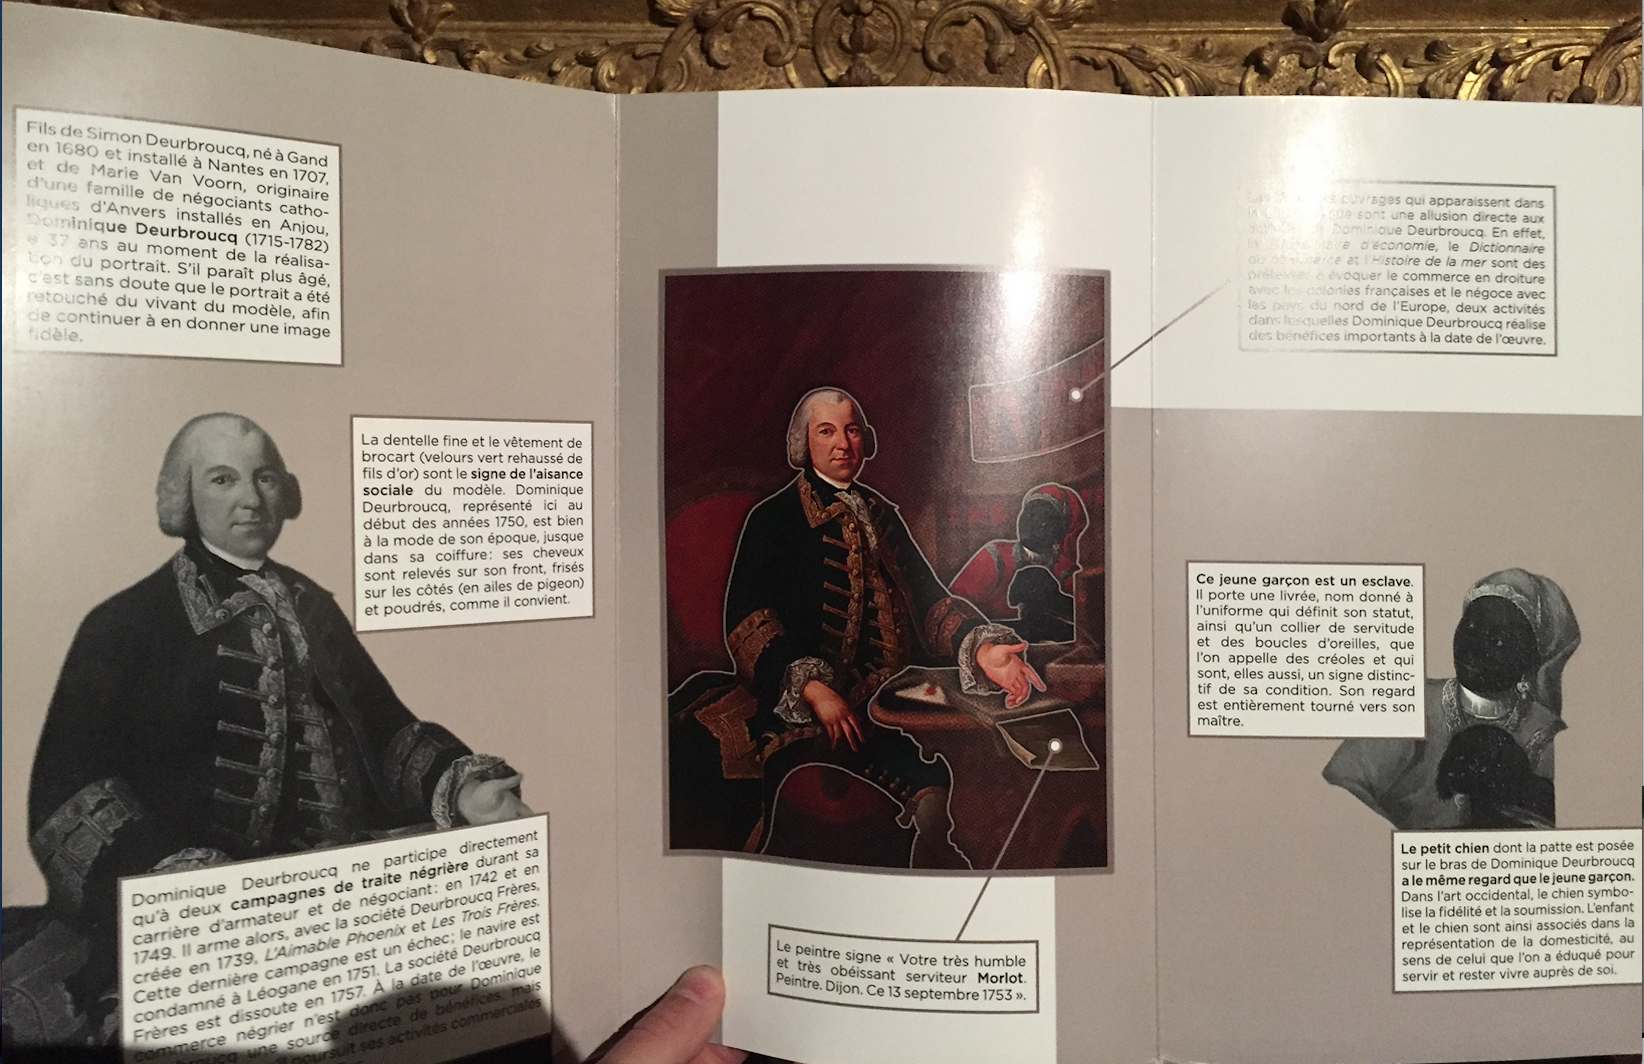 A booklet explaining the details of the portrait of Dominique Deurbroucq.